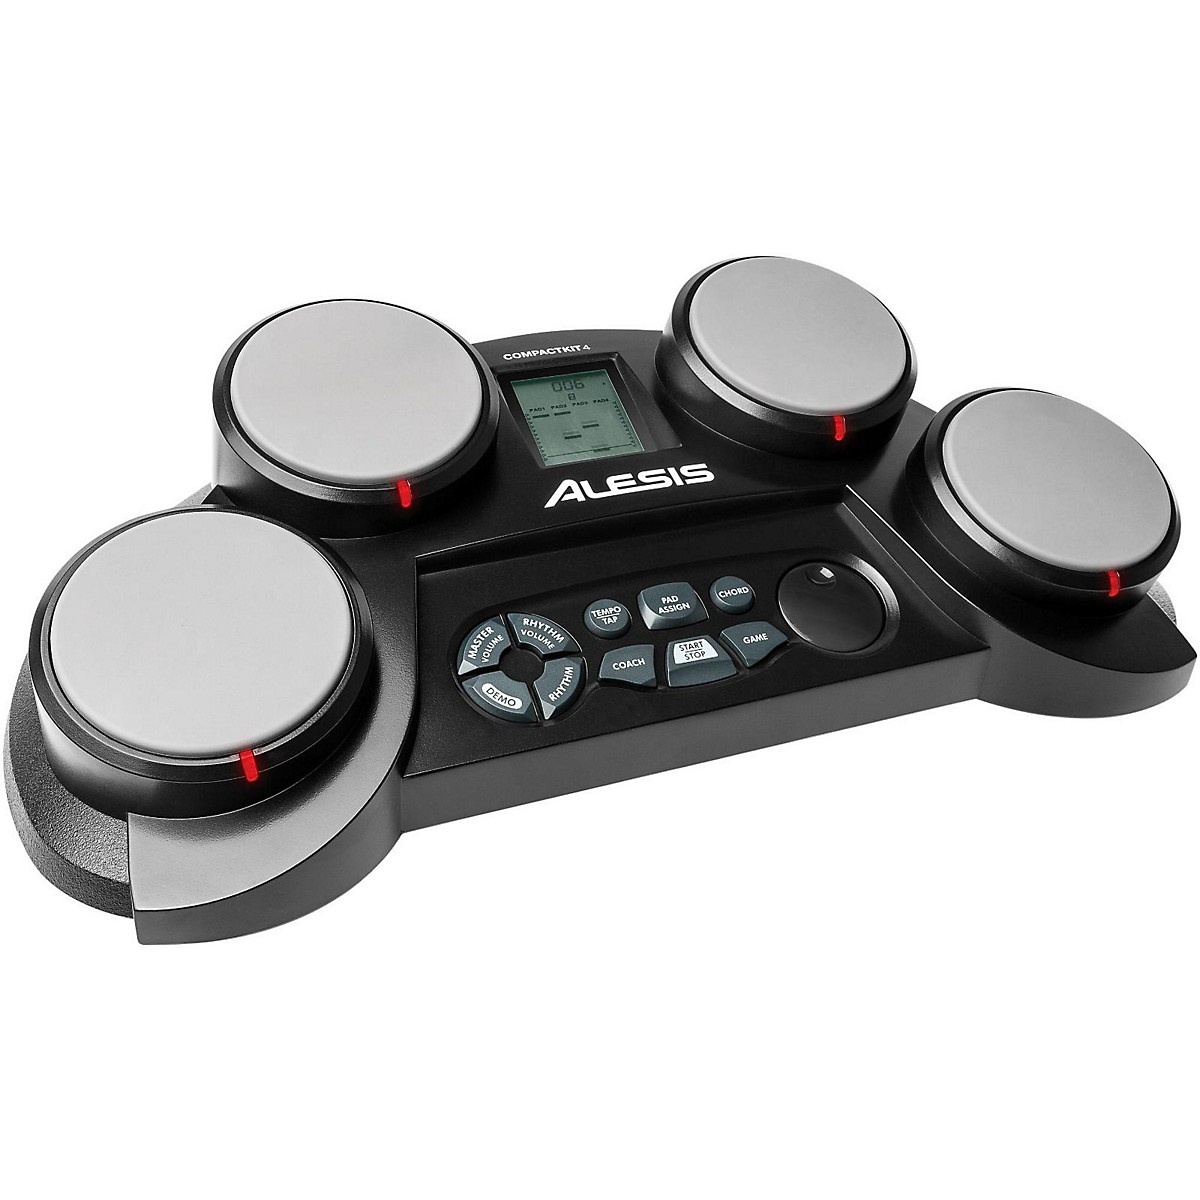 Alesis CompactKit 4 Electronic Drum Kit